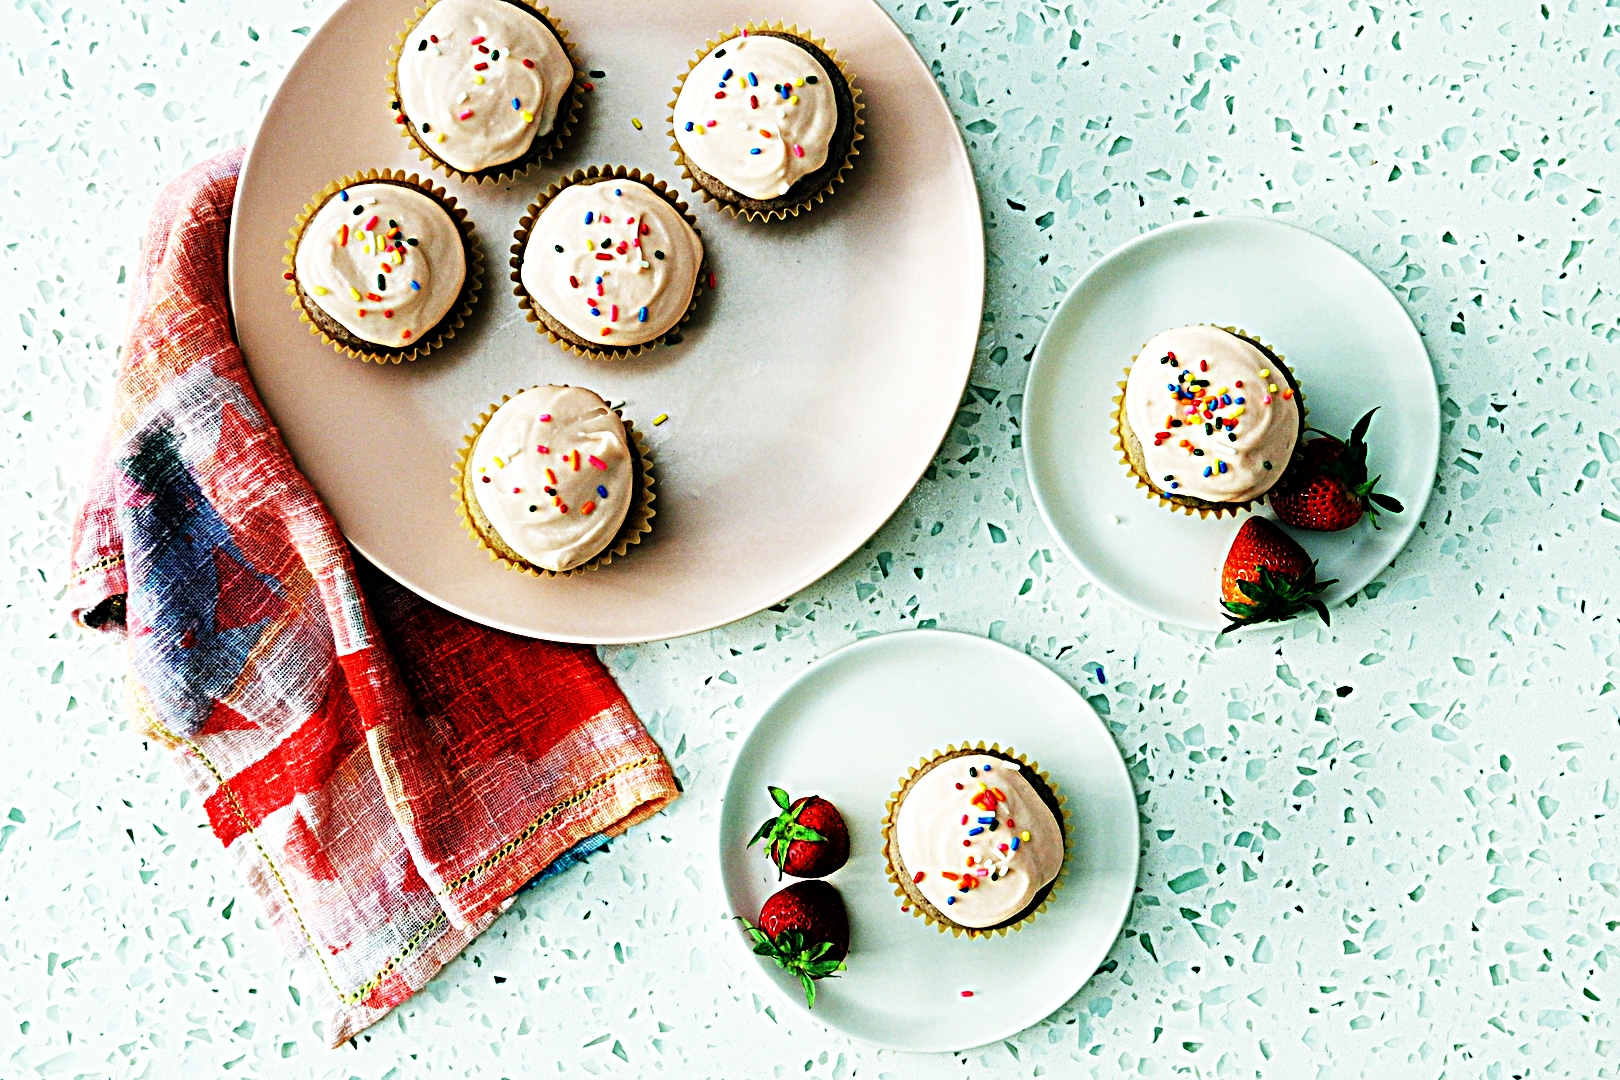 Stupid-Easy Recipe for Strawberry Cupcakes with Strawberry Buttercream (#1 Top-Rated)